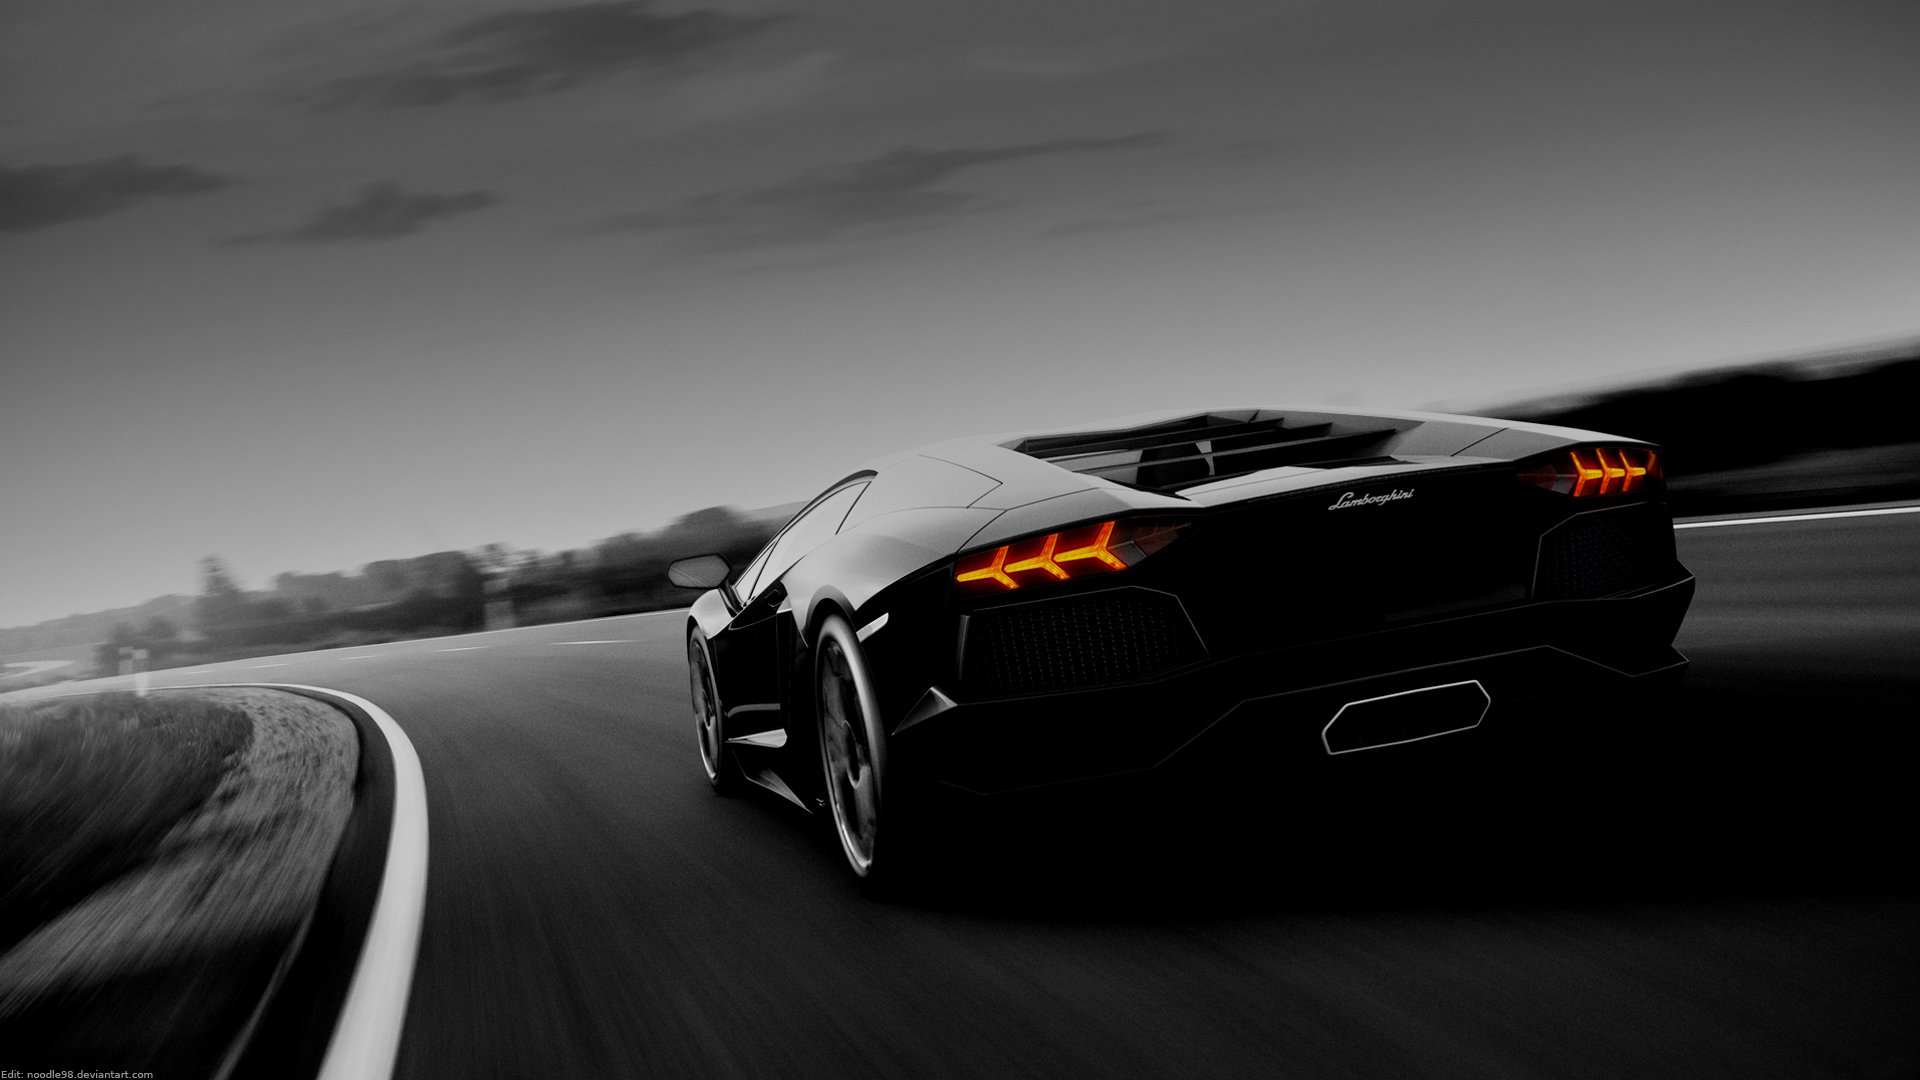 wallpaper inspirational wallpapers supercar lambo aventador 1920x1080 1920x1080